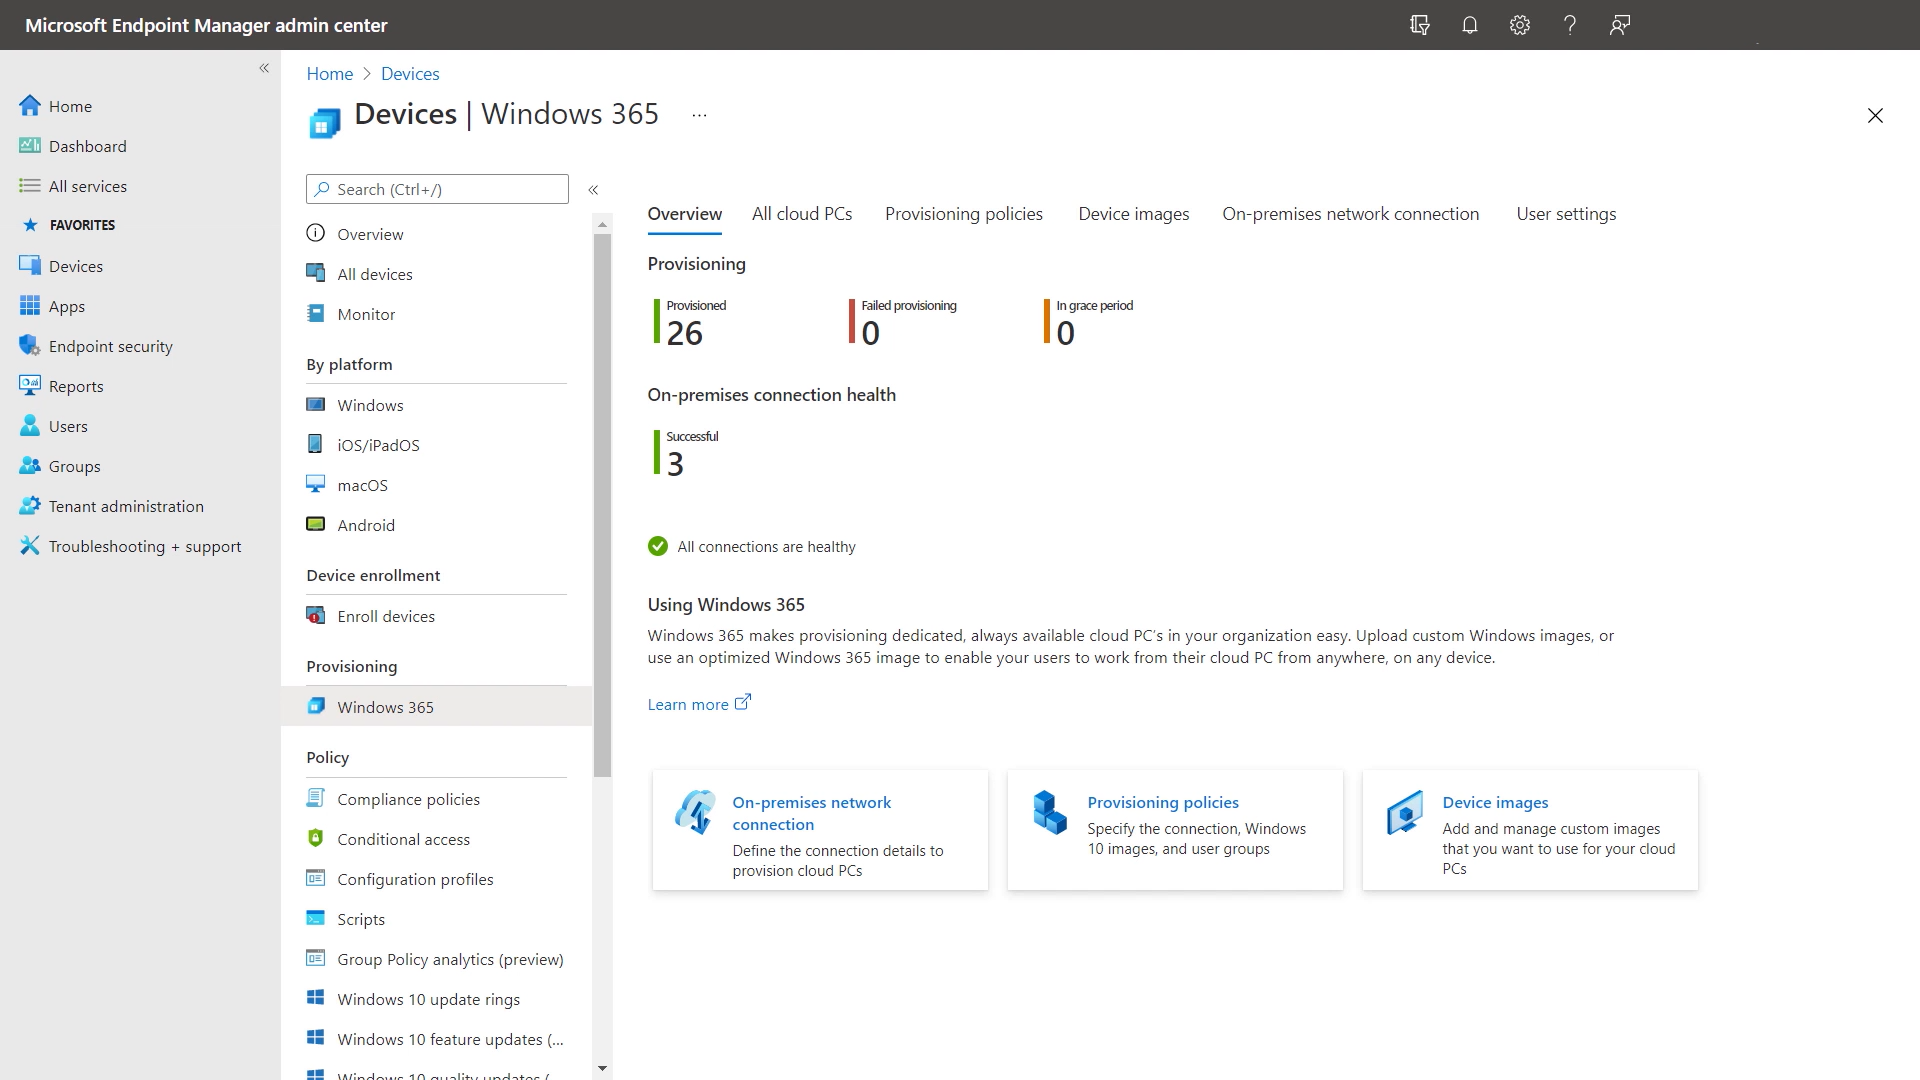 Familiar tools: You can manage your Cloud PCs alongside your physical devices right within Microsoft Endpoint Manager.